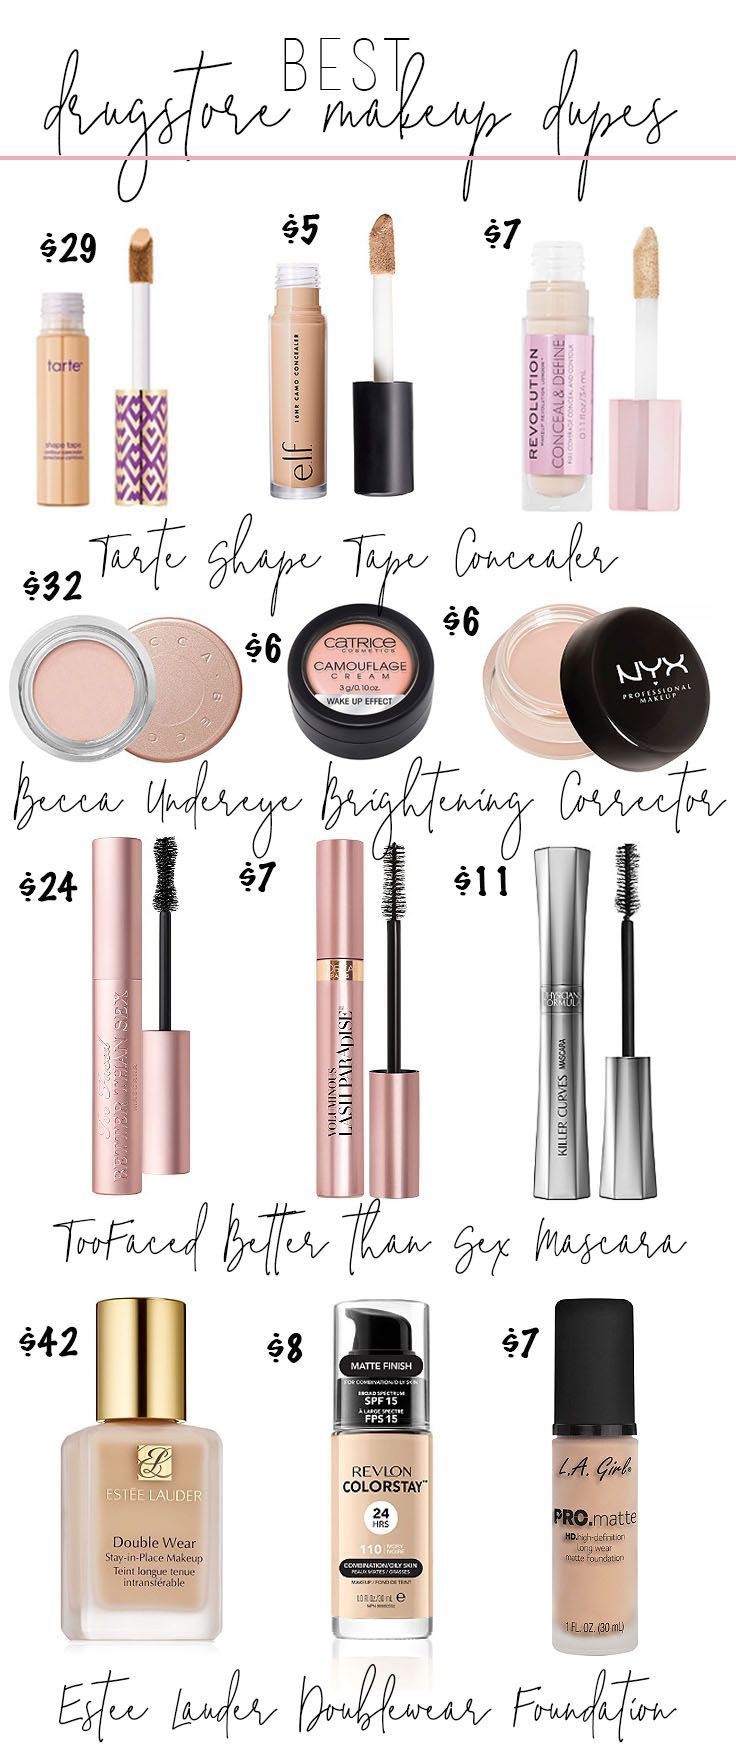 Best Makeup Dupes From the Drugstore • Drugstore Makeup Dupes